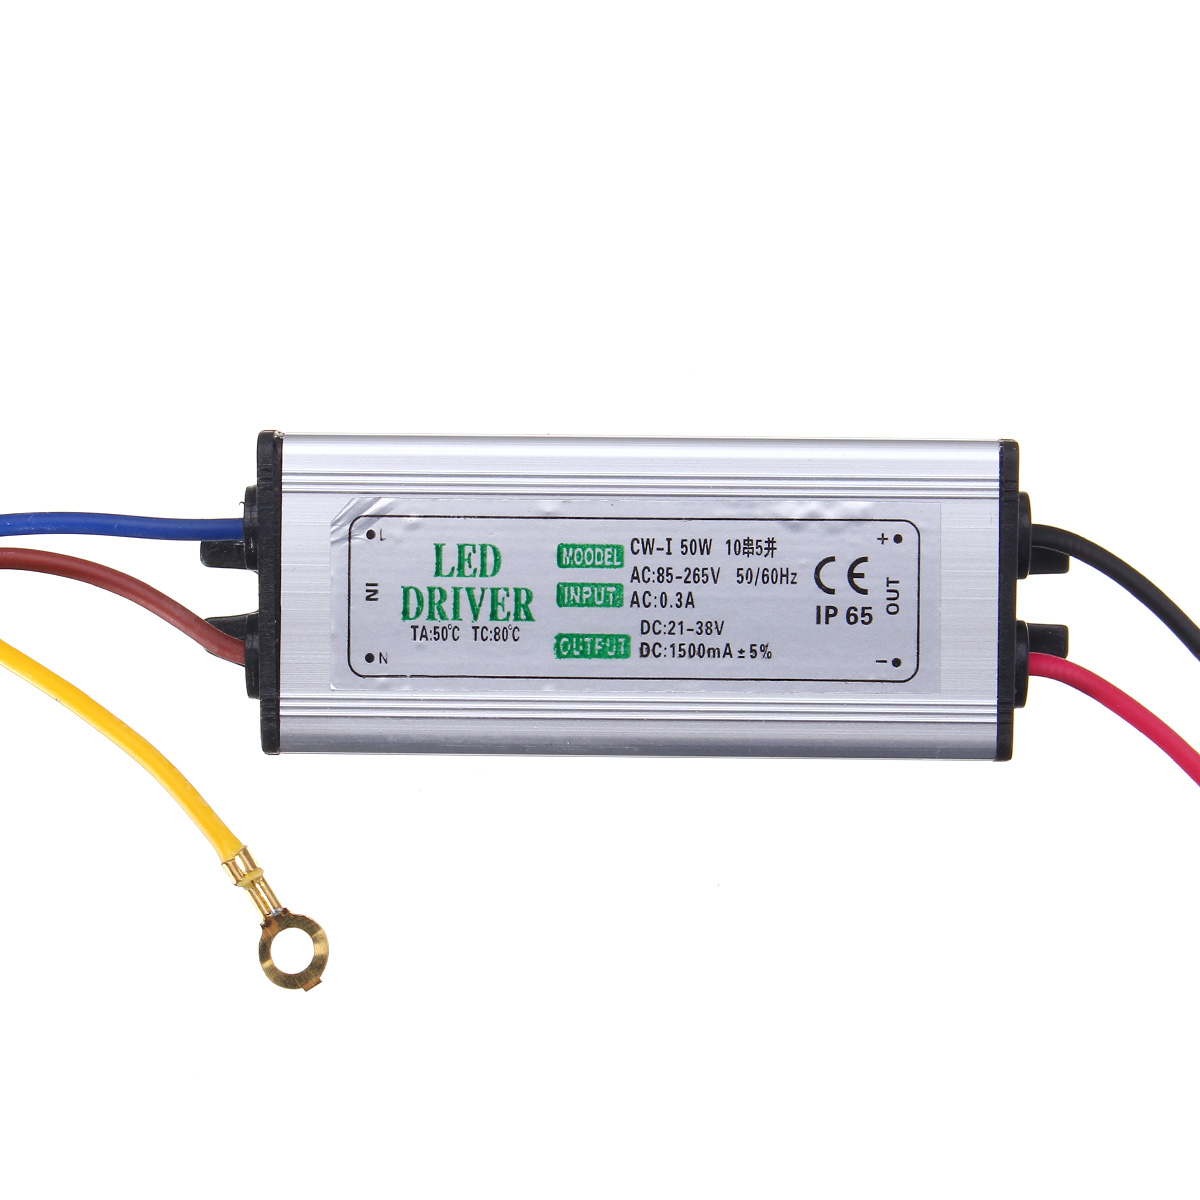 50w Led Driver Power Supply: 10W 20W 30W 50W 100W Waterproof High Power Supply LED